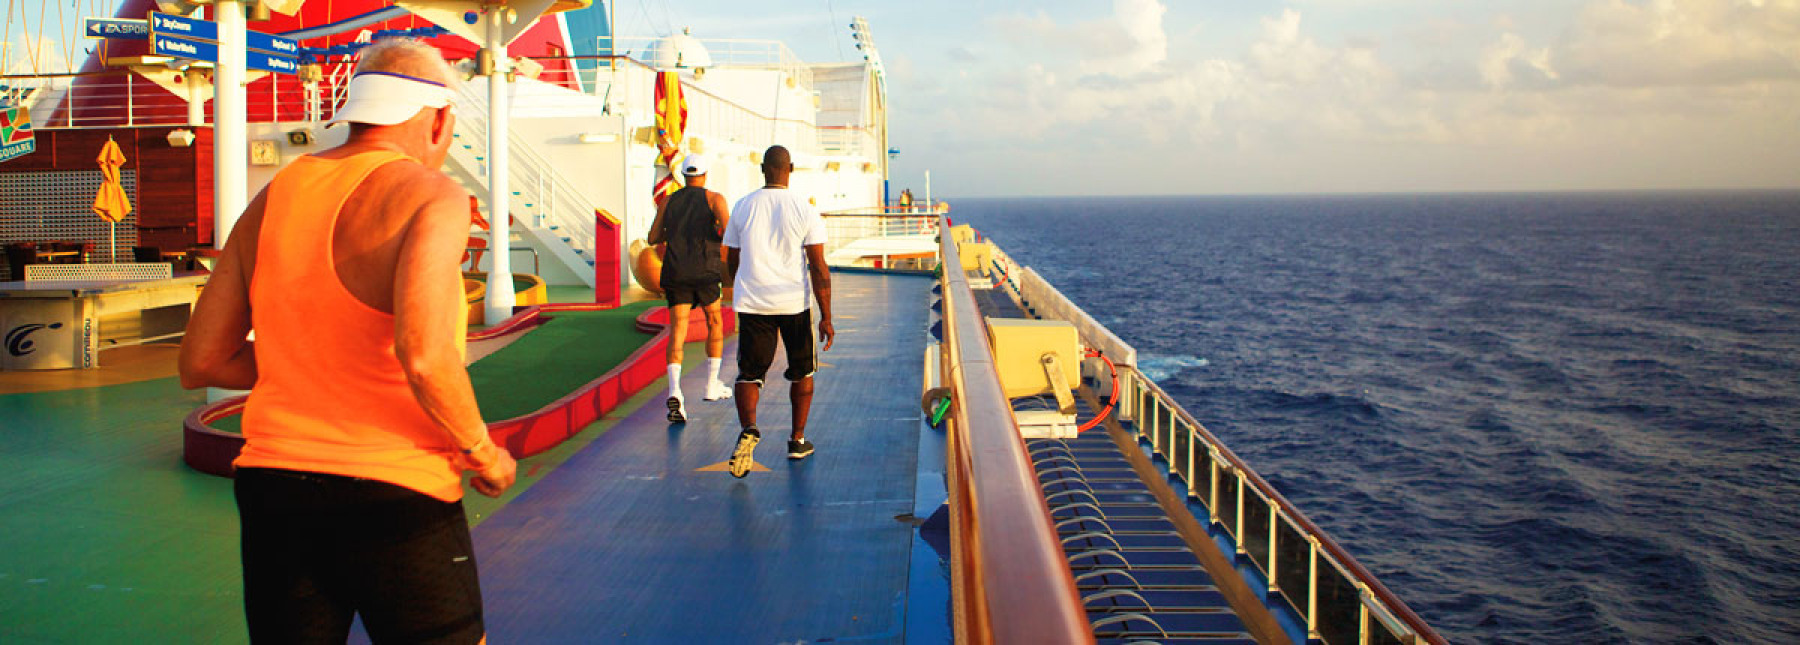 Carnival Cruise Lines Carnival Sunshine Exterior Jogging Track.jpeg